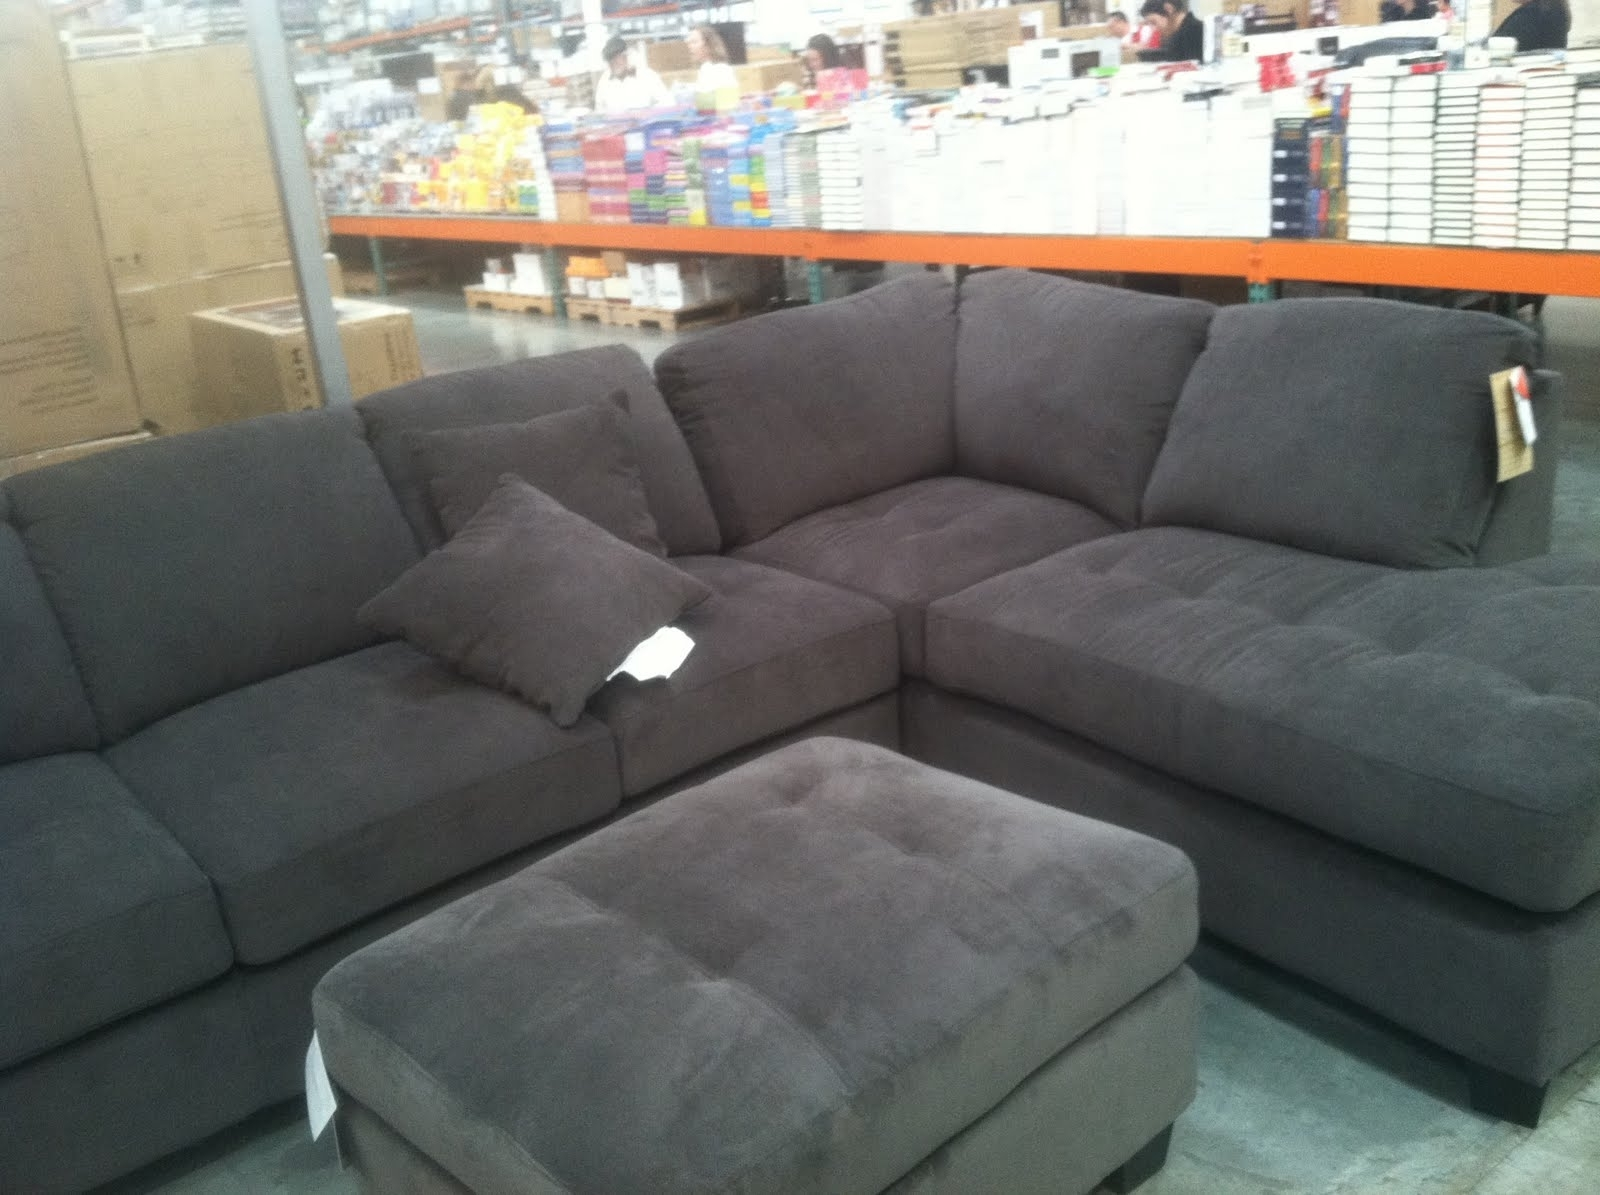 Best And Newest Fancy Gray Sectional Sofa Costco 53 Office Sofa Ideas With Gray Throughout Sectional Sofas At Costco (View 12 of 20)